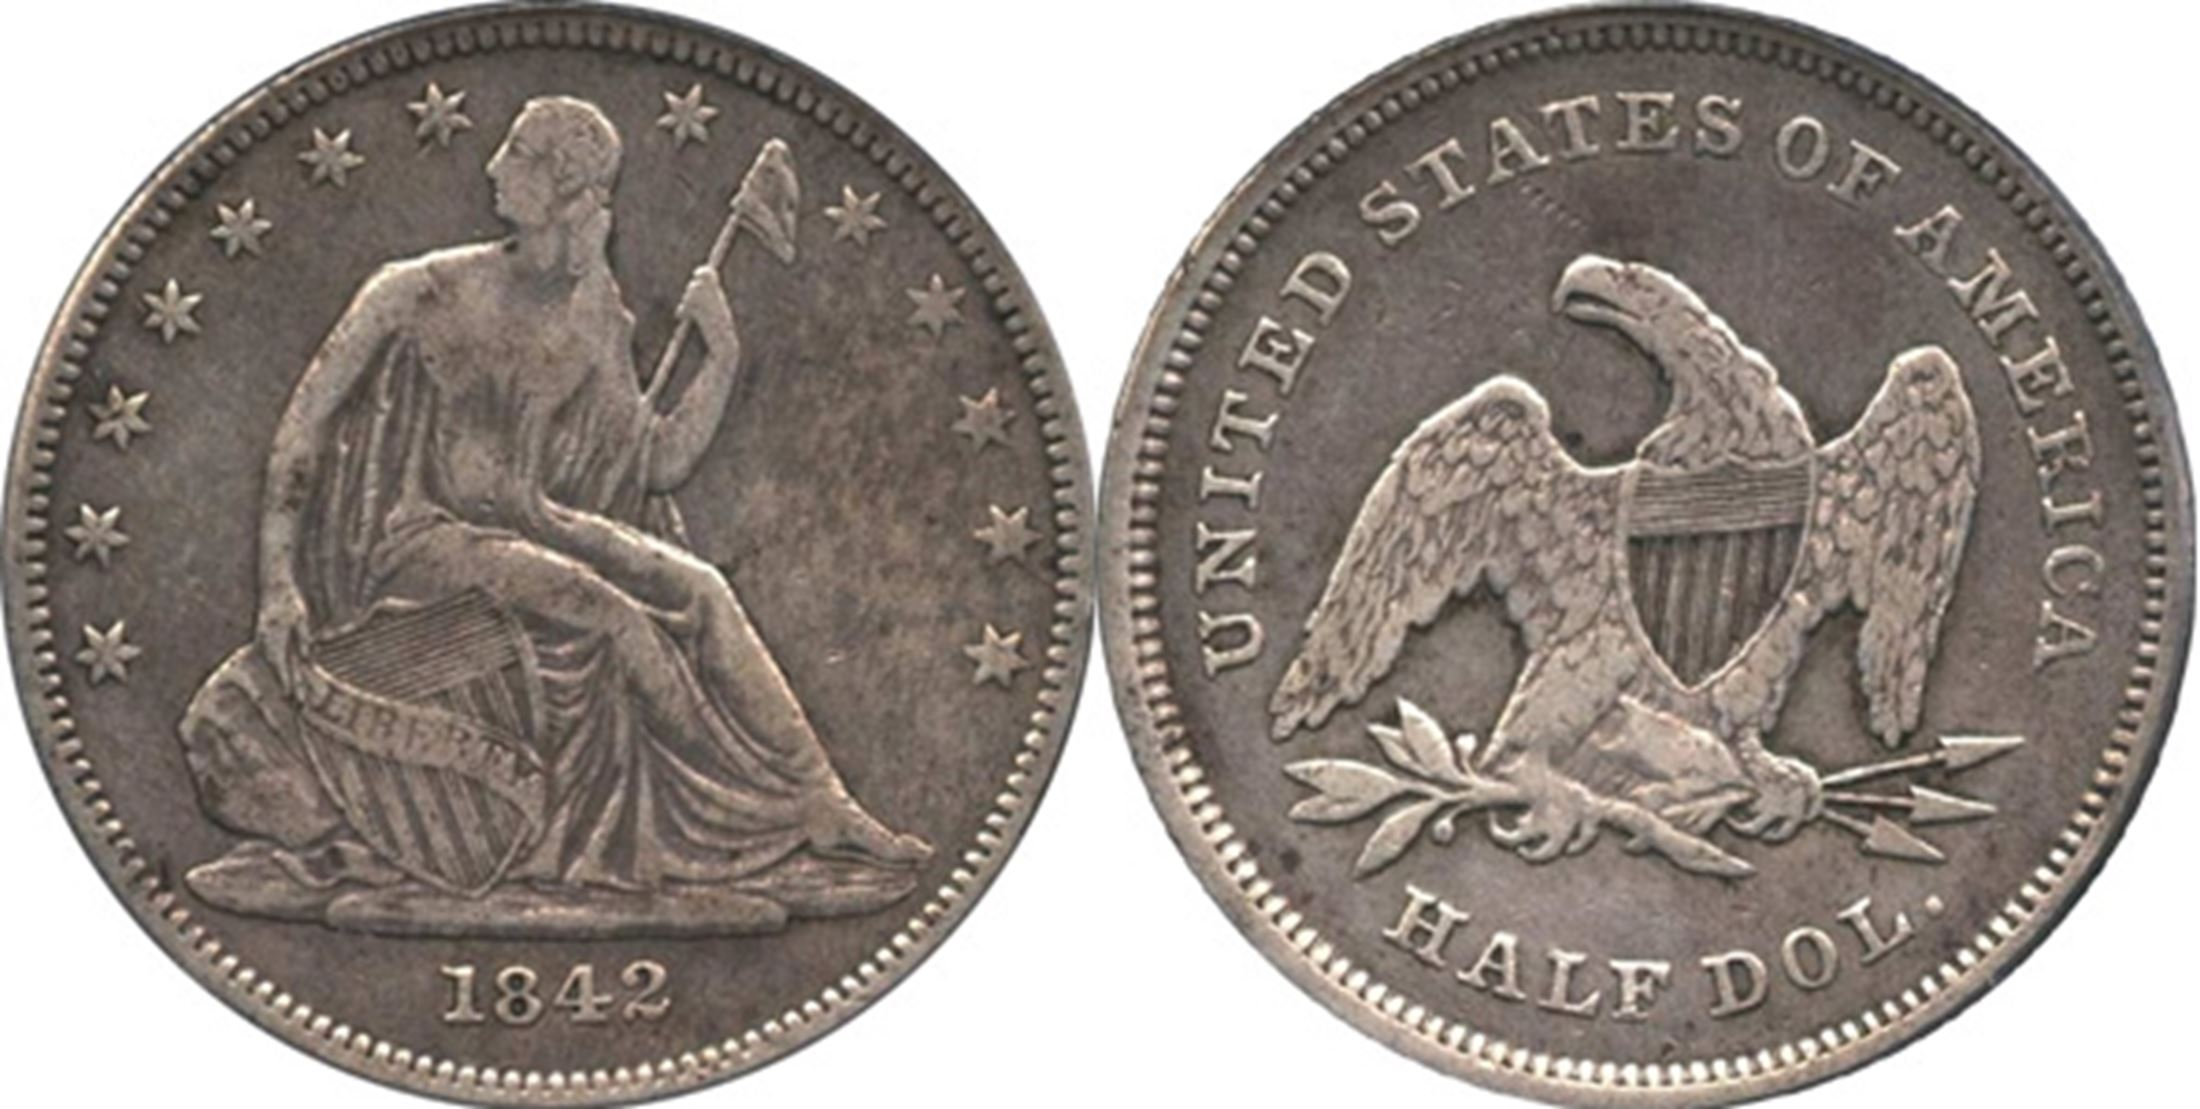 "PCGS VF20<BR>Image courtesy of <a href=""http://www.ha.com"" target=""_blank"">Heritage Numismatic Auctions</a>"